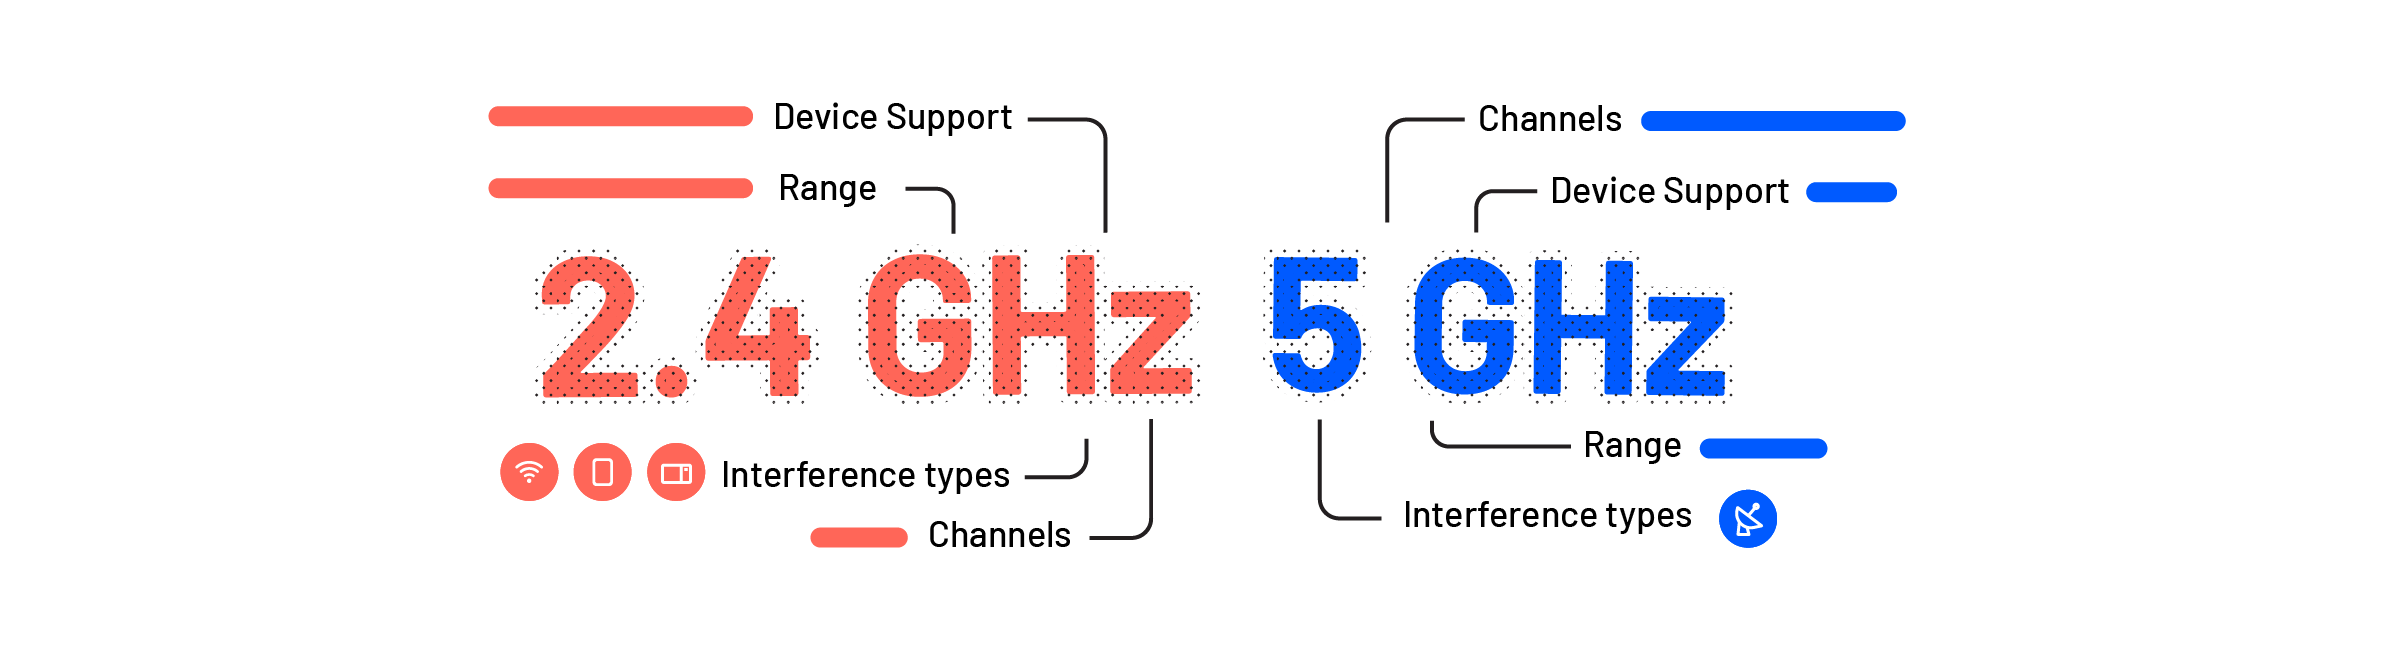 Wifi bands and channels